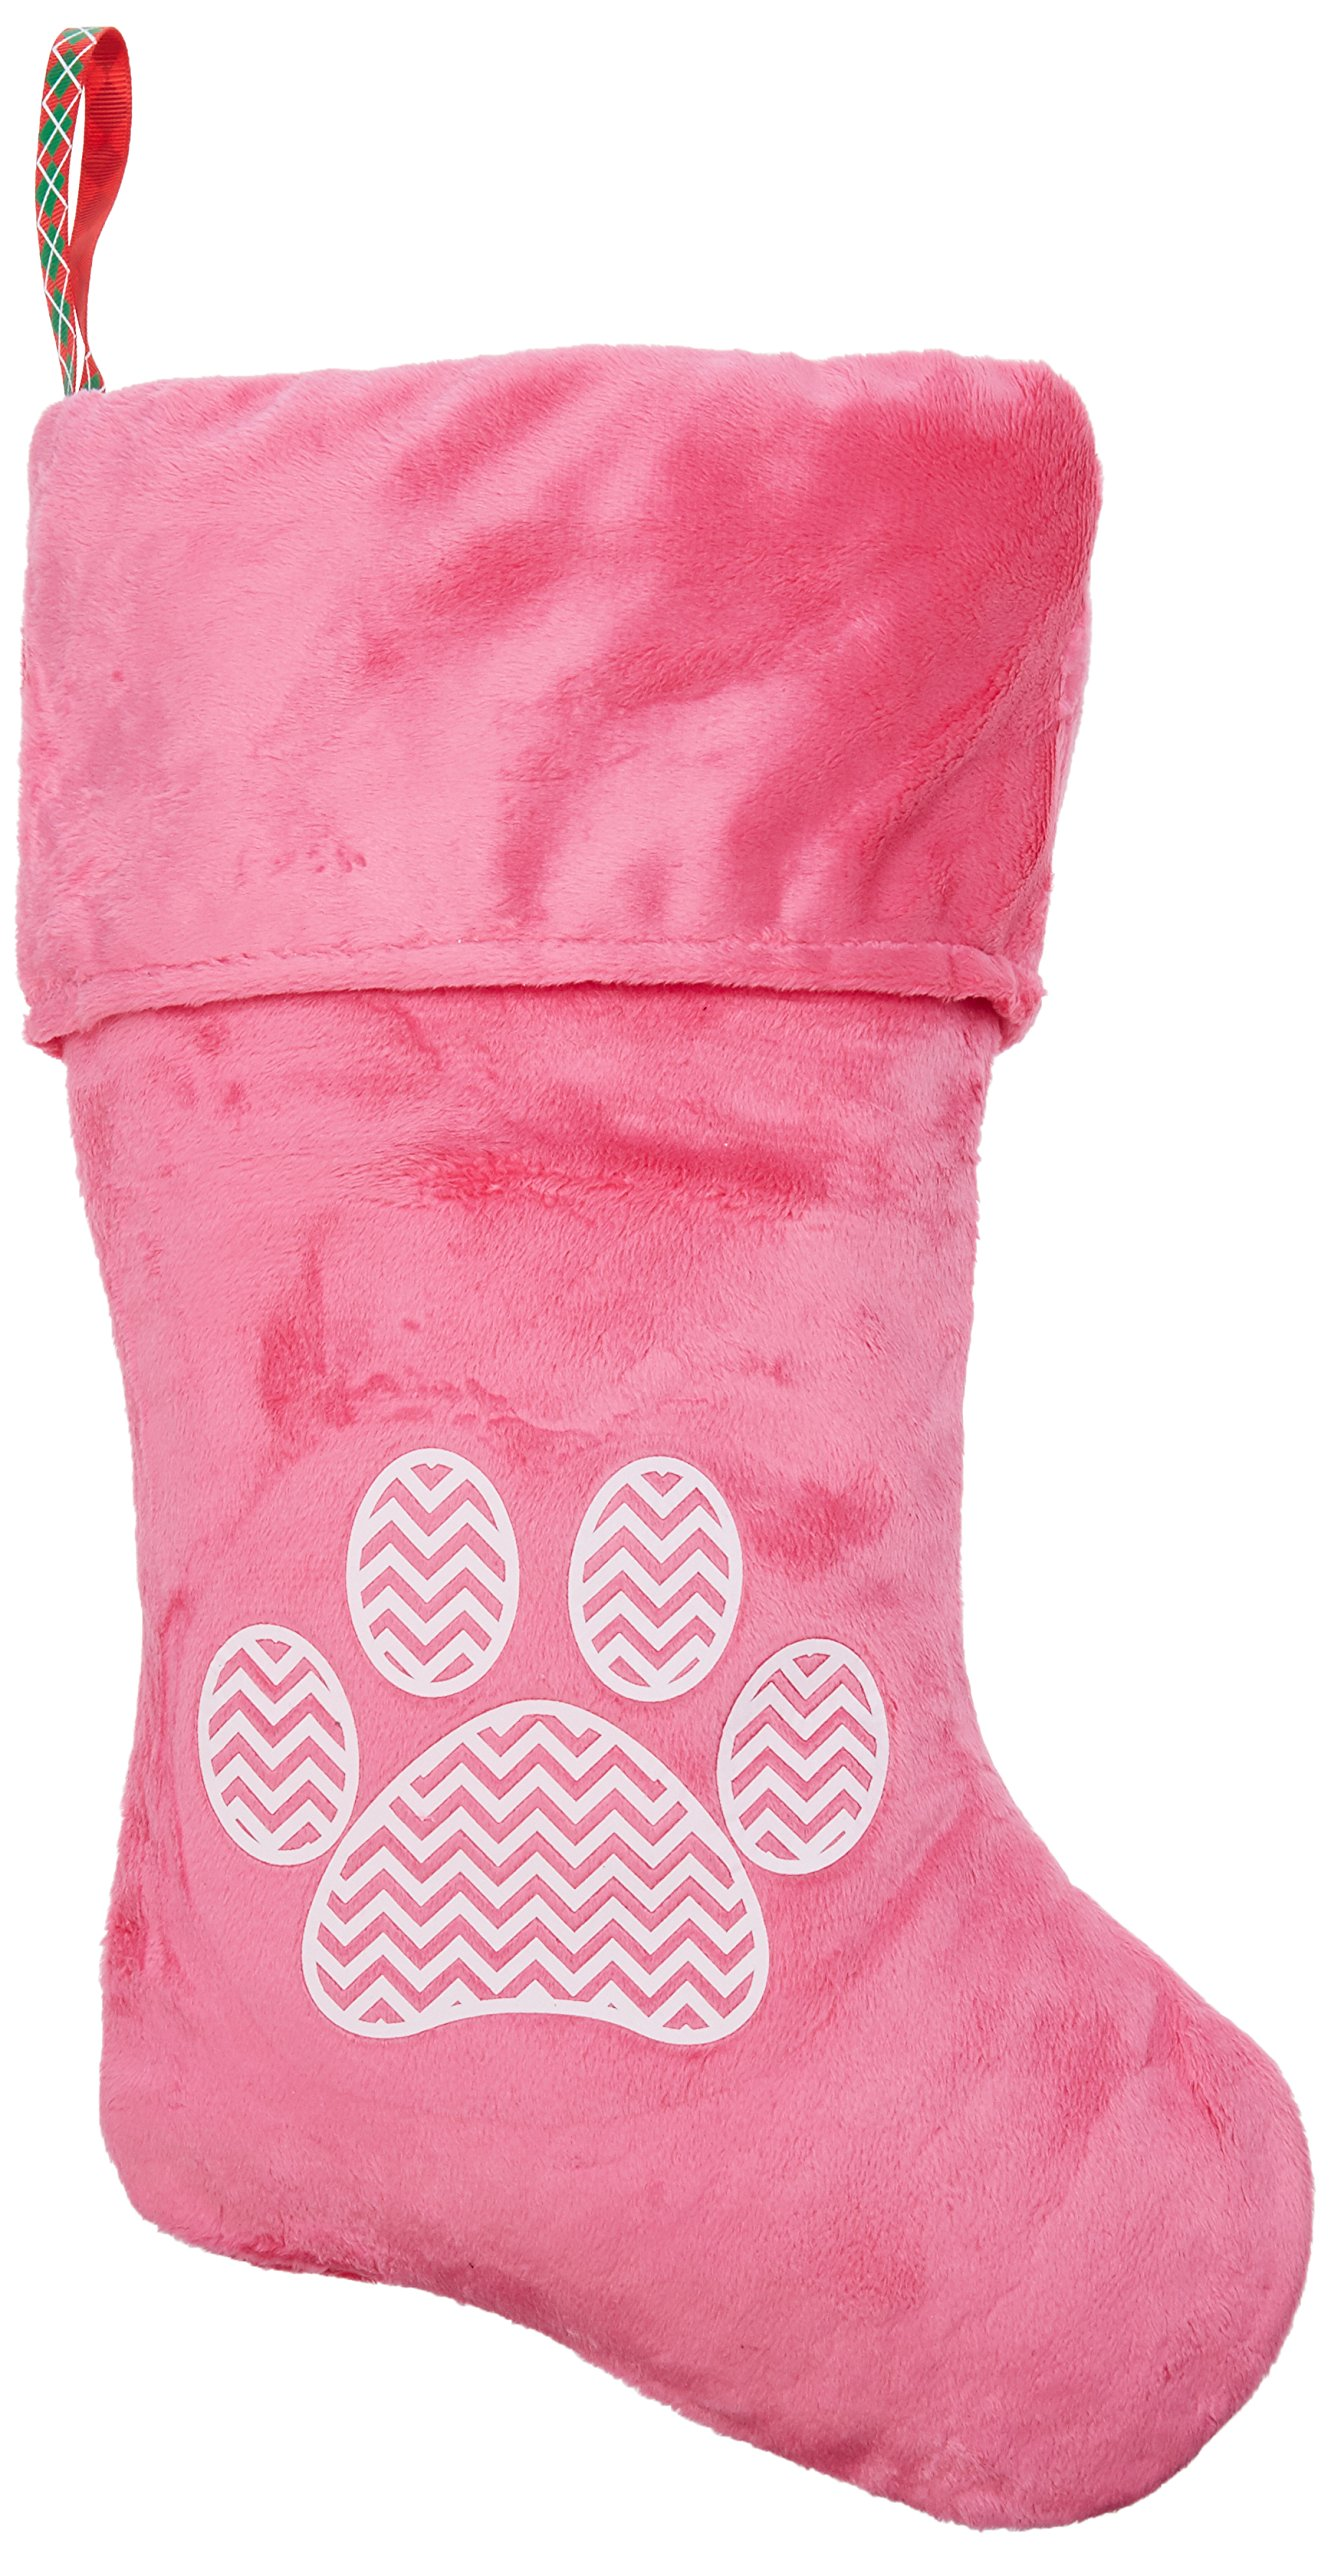 Mirage Pet Products Chevron Paw Screen Print Velvet Christmas Stocking, Size 18, Pink by Mirage Pet Products